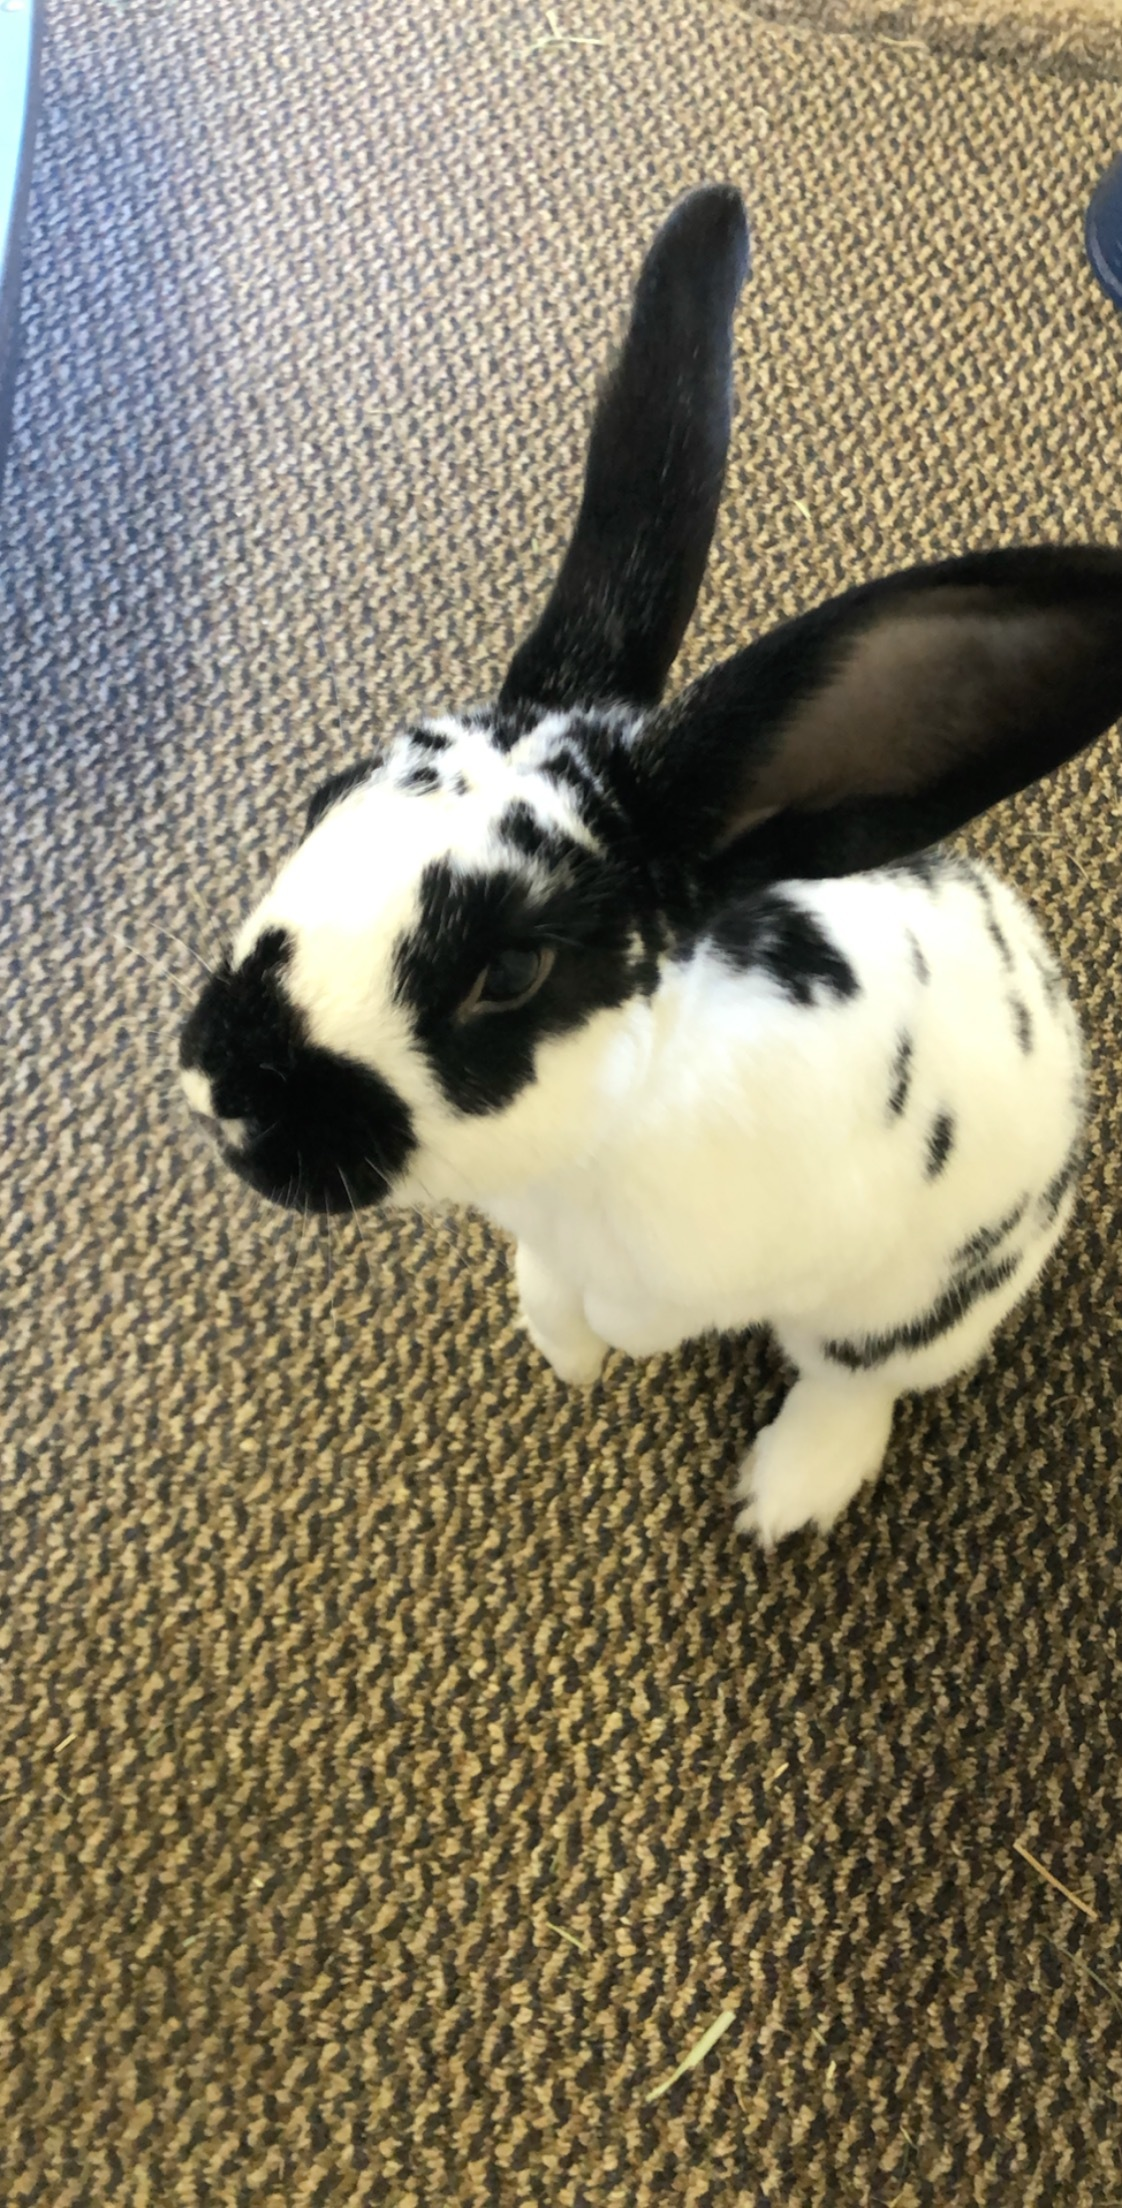 Real Bunnies For Sale Near Me : bunnies, Rabbits, Adoption, Philadelphia,, Petfinder